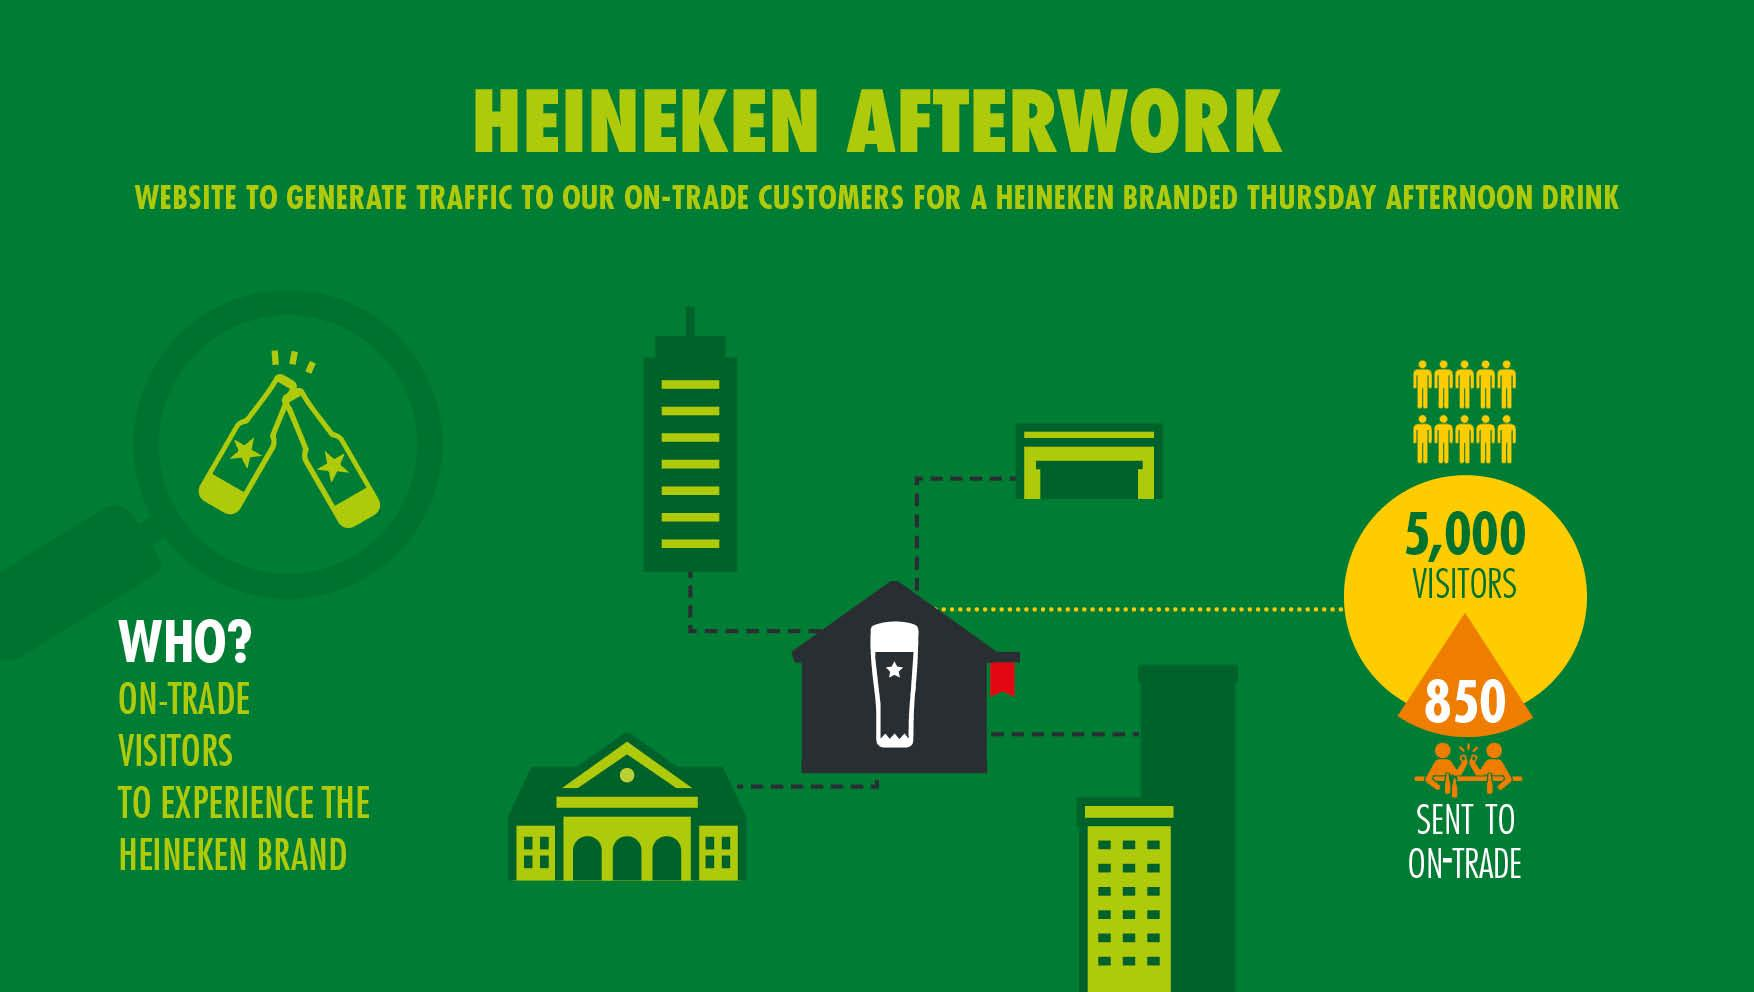 slides-heineken---team-digital-nl---year-201513.jpg